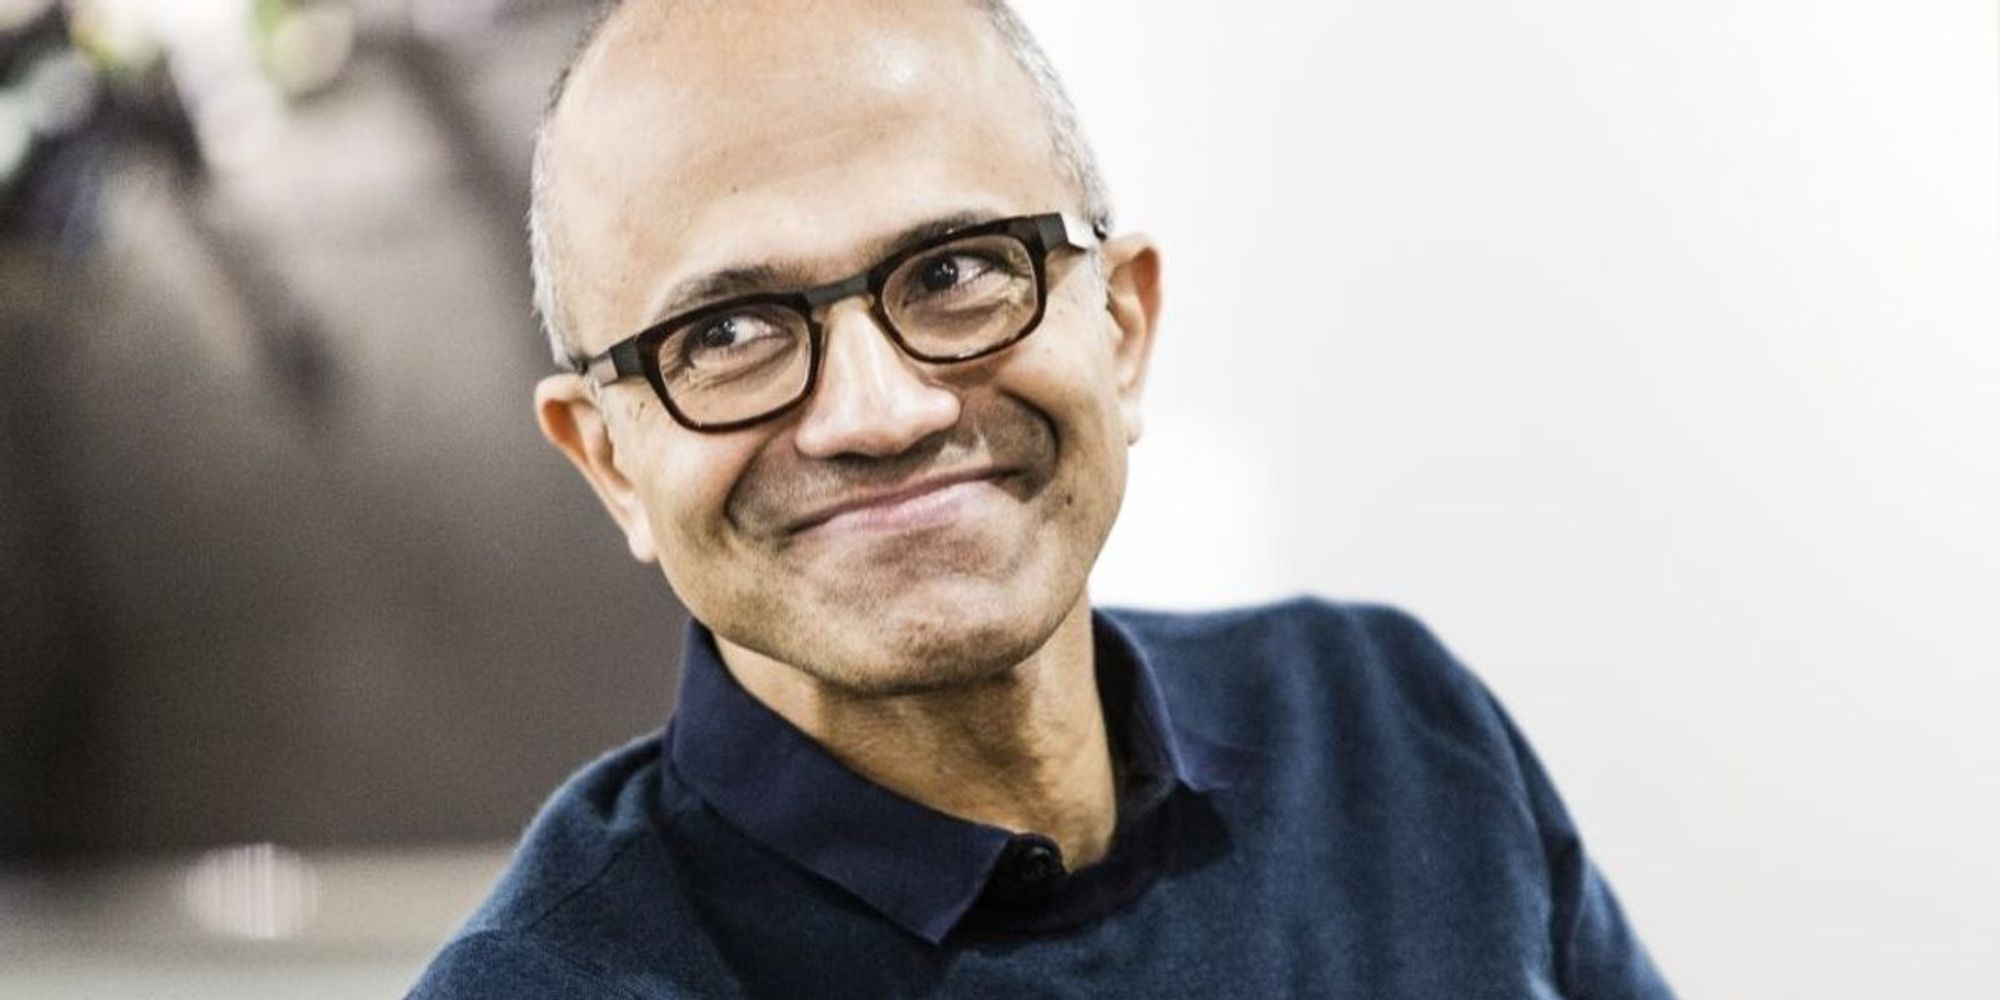 Microsoft just built one of the world's most powerful supercomputers — in Azure